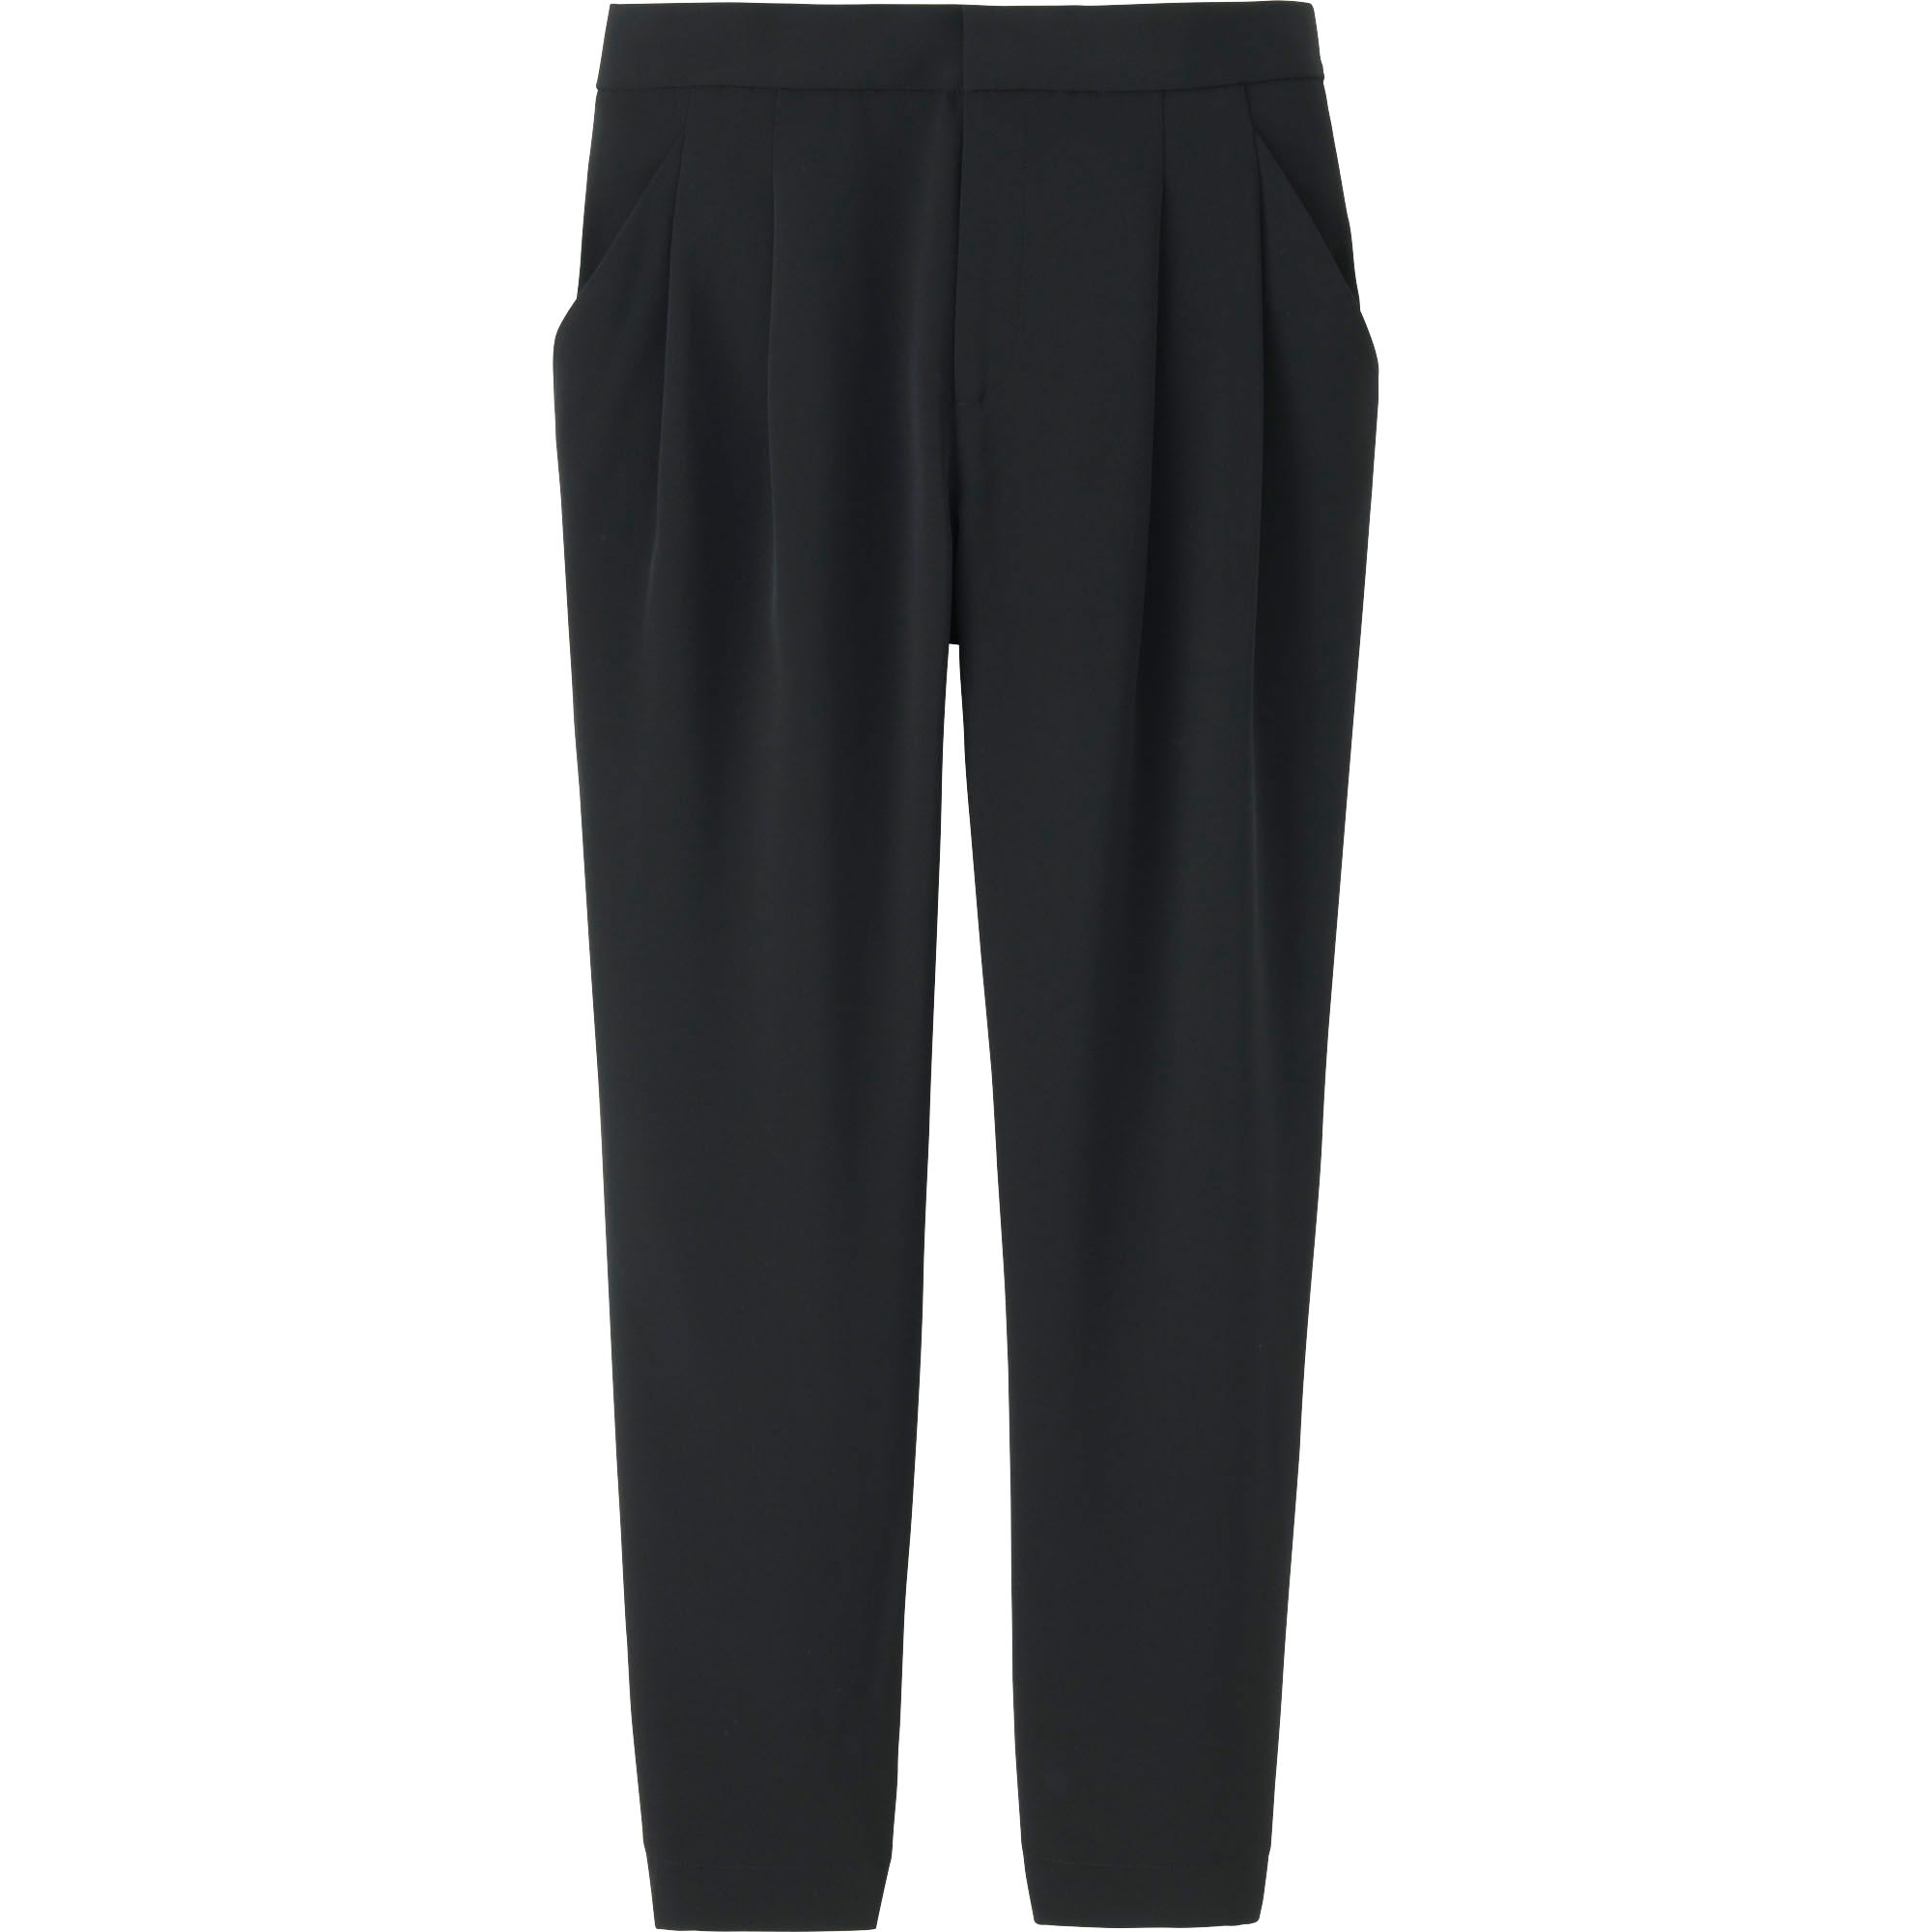 Simple Uniqlo Blue Women Ponte Jogger Pants 40 From Uniqlo Buy Now Save For